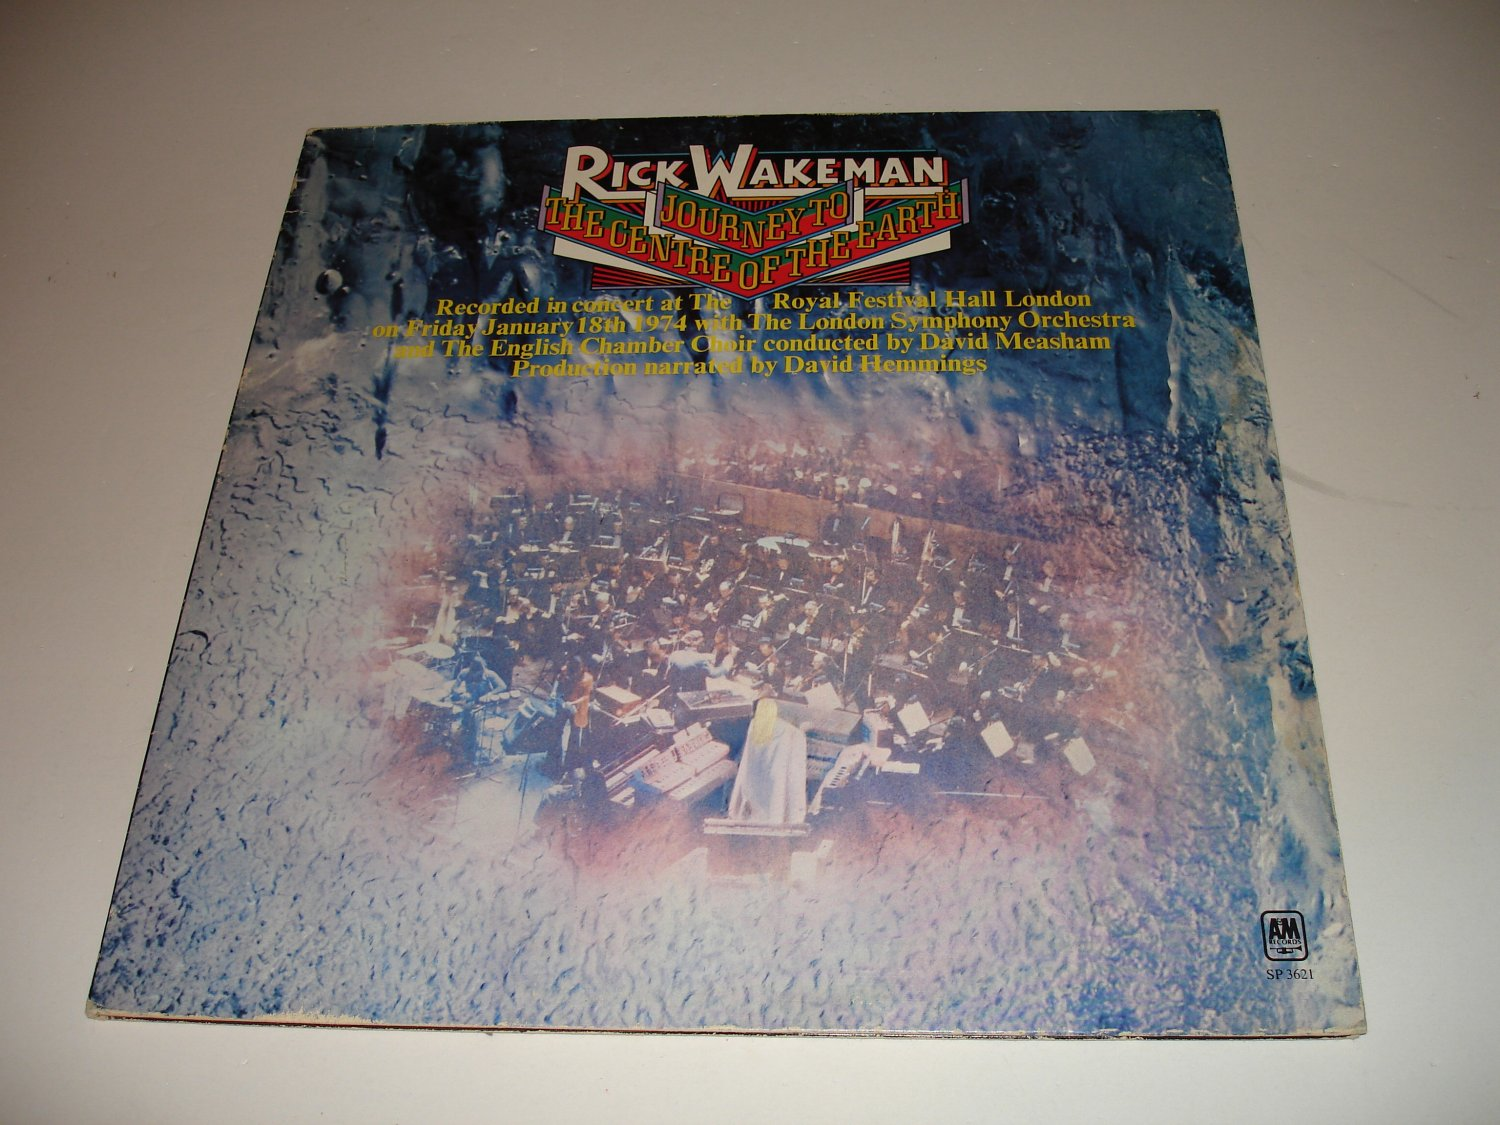 Rick Wakeman - Journey To The Center Of The Earth (SP-3621) on 33 rpm Vinyl LP